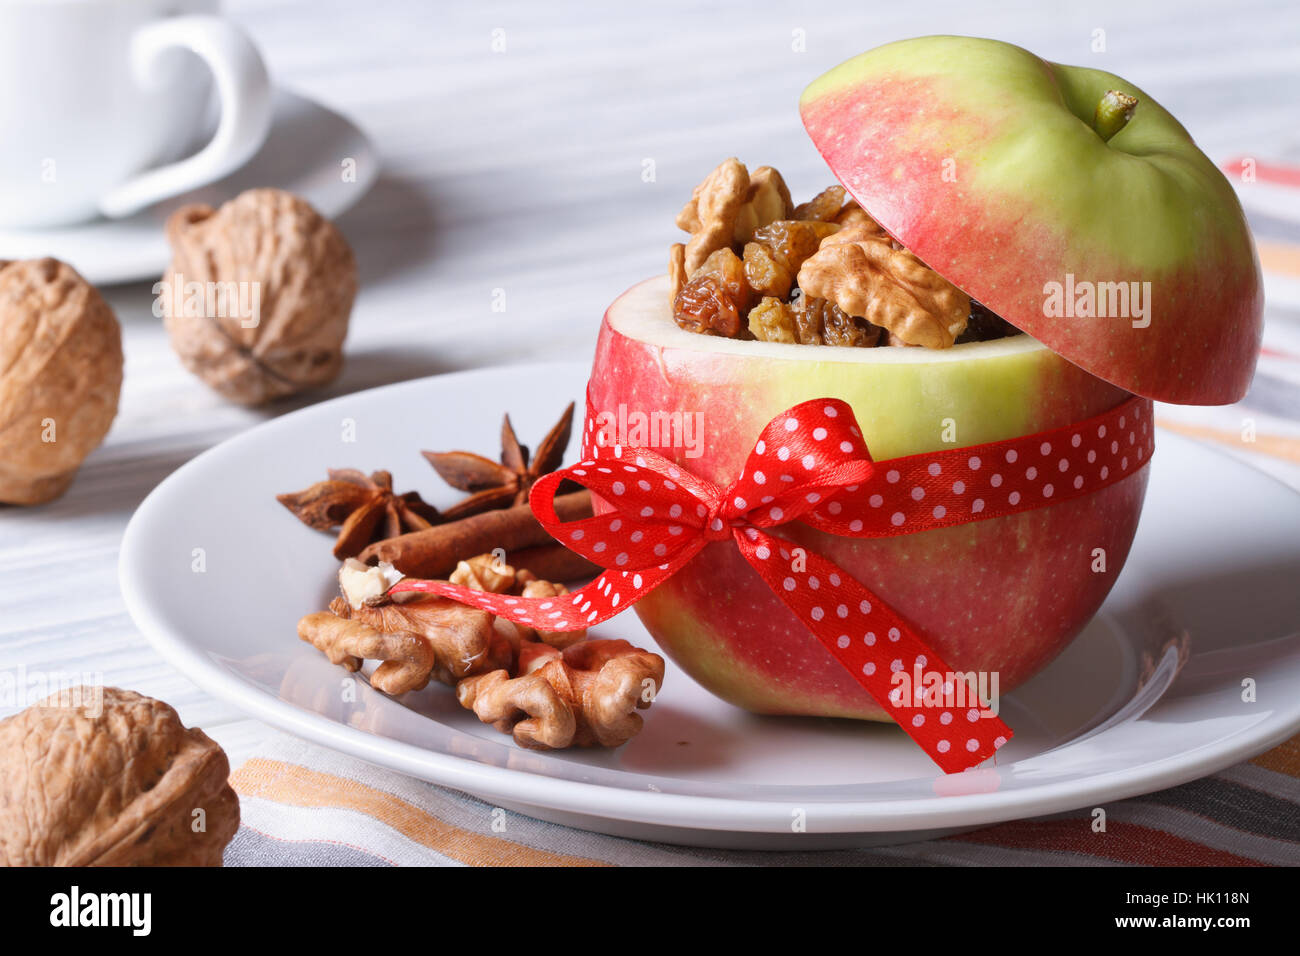 Red apple with nuts and raisins on a white plate and coffee on the table. Horizontal close-up - Stock Image